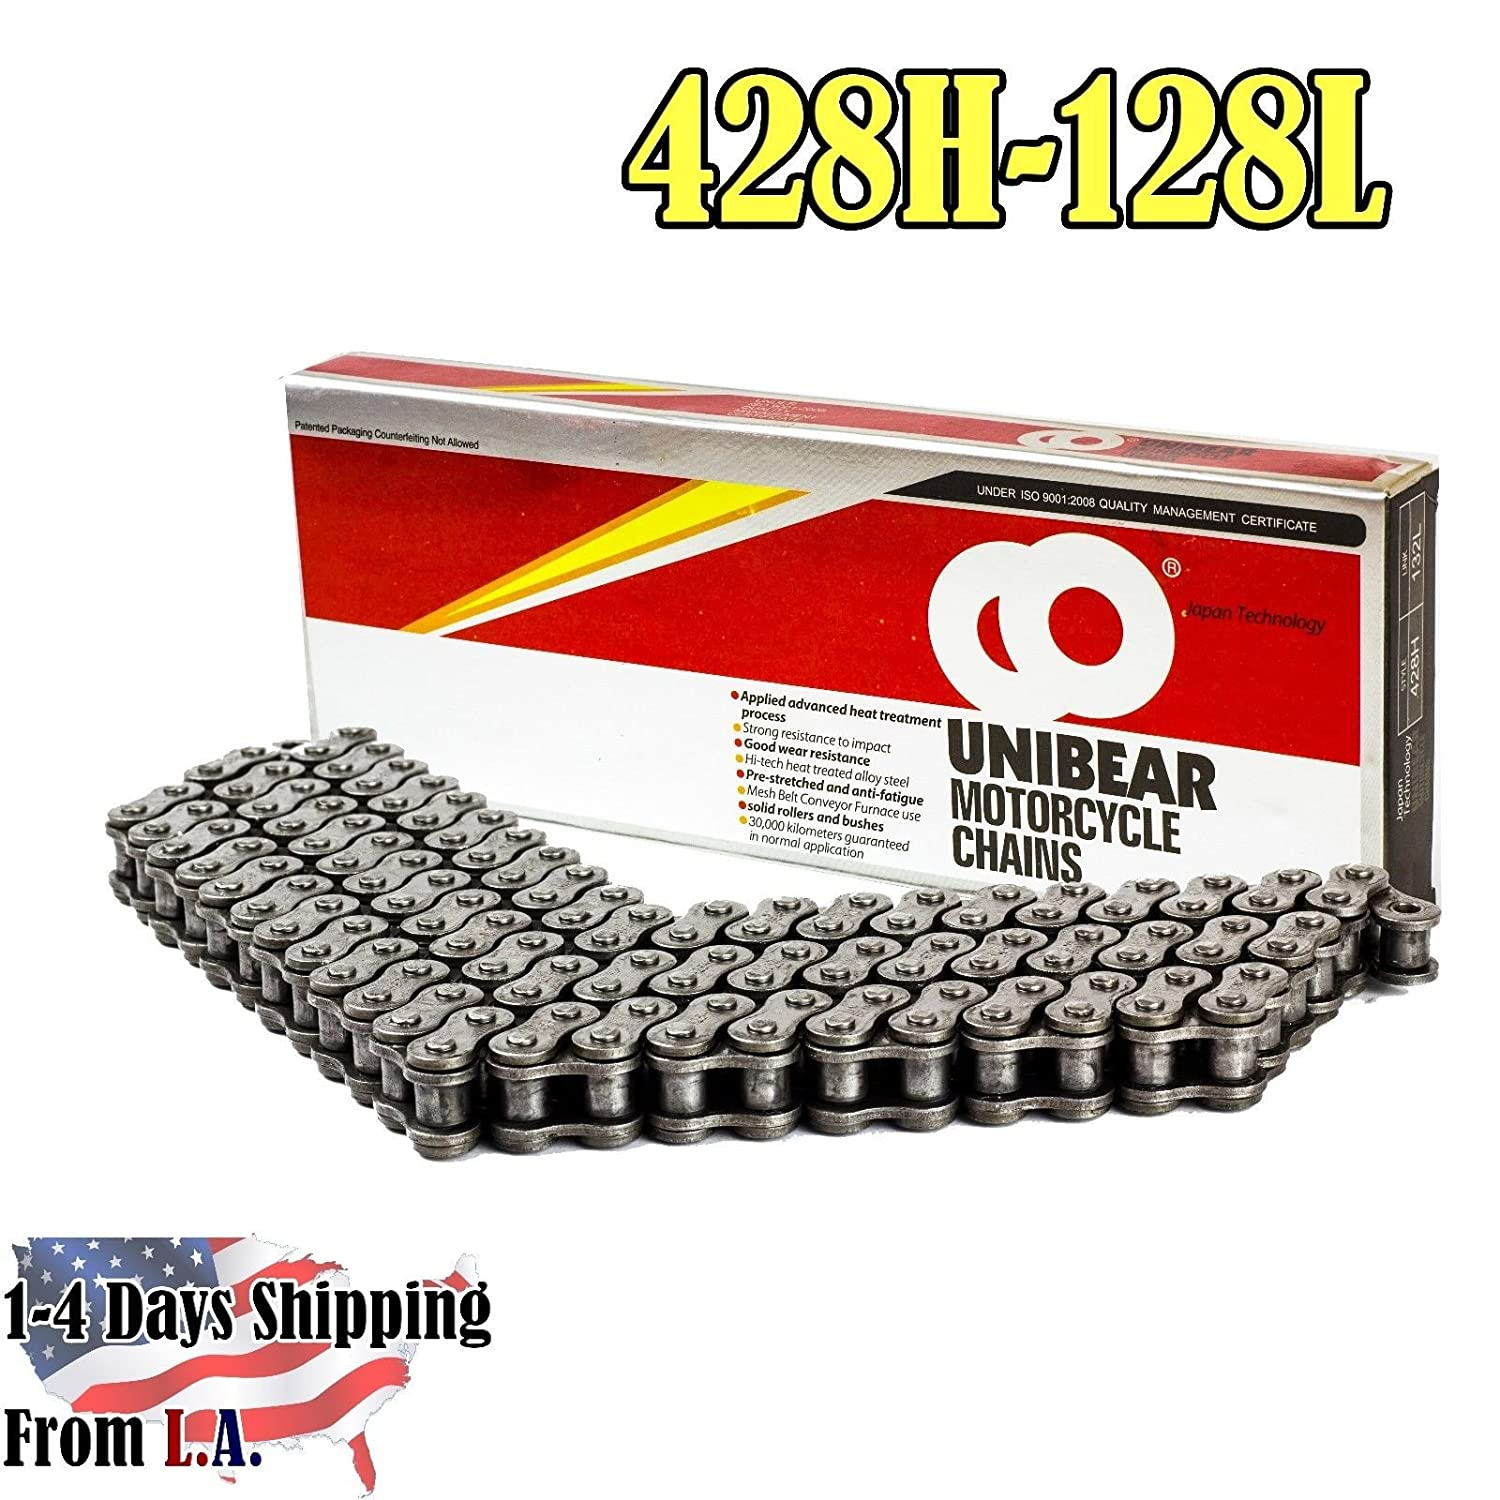 Unibear 428H 128 Links Motorcycle Chain with Connecting Link Natural Color 428H-128L Heavy Duty Japan Technology,Wear Resistance